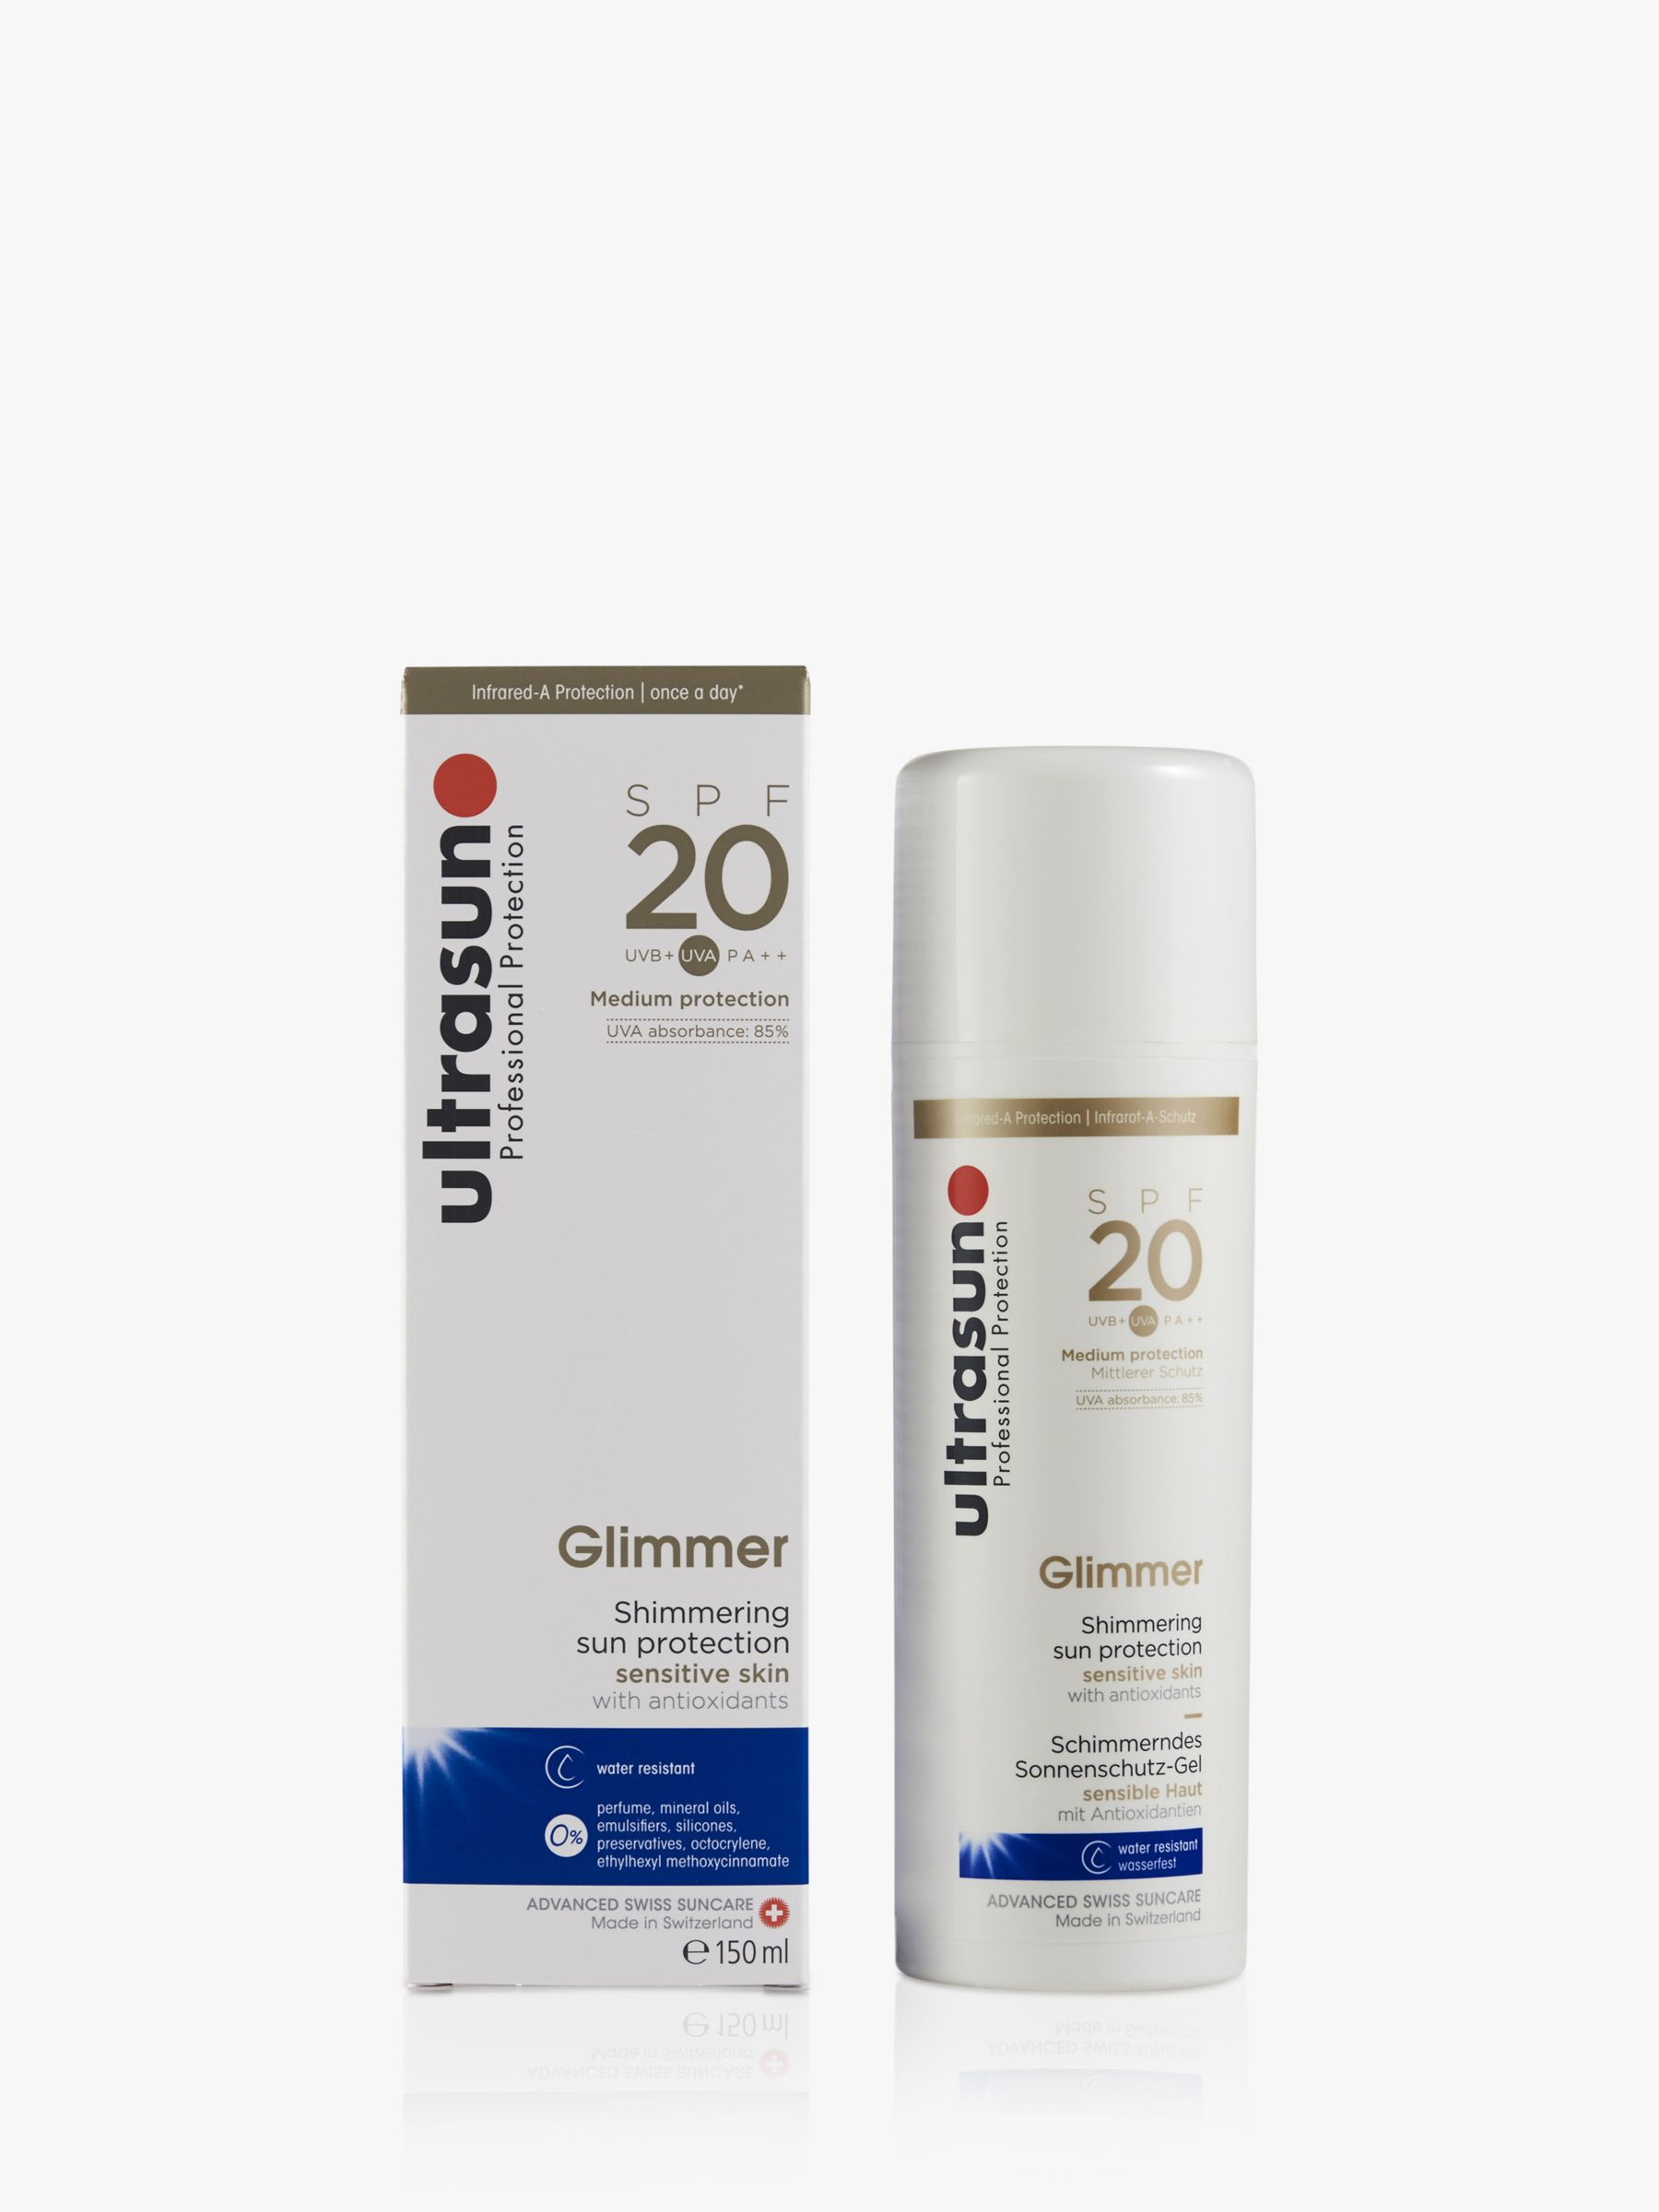 Ultrasun Ultrasun Glimmer Shimmering Sun Protection Body Sun Cream SPF 20, 150ml